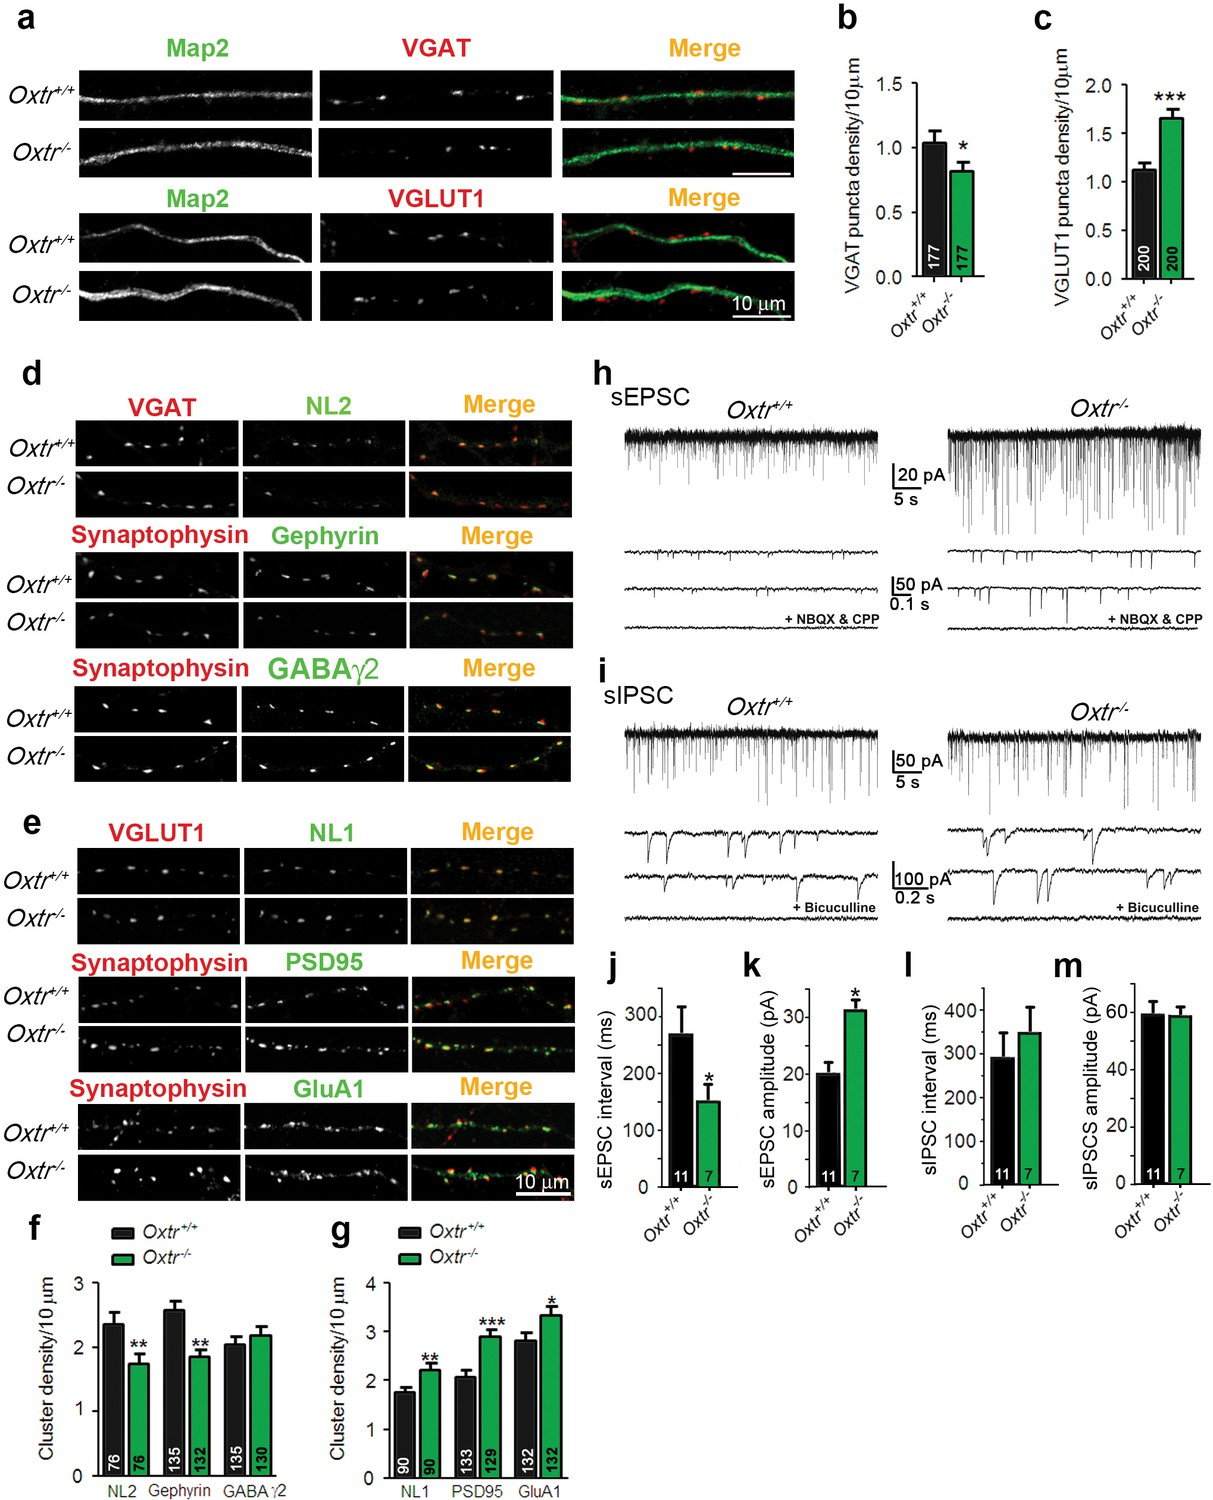 Transient Oxytocin Signaling Primes The Development And Function Of Snap Circuits Extreme Educational 750 Exp Hippocampal Cultures From Oxtr Mice Show An Increased Excitation Inhibition Balance